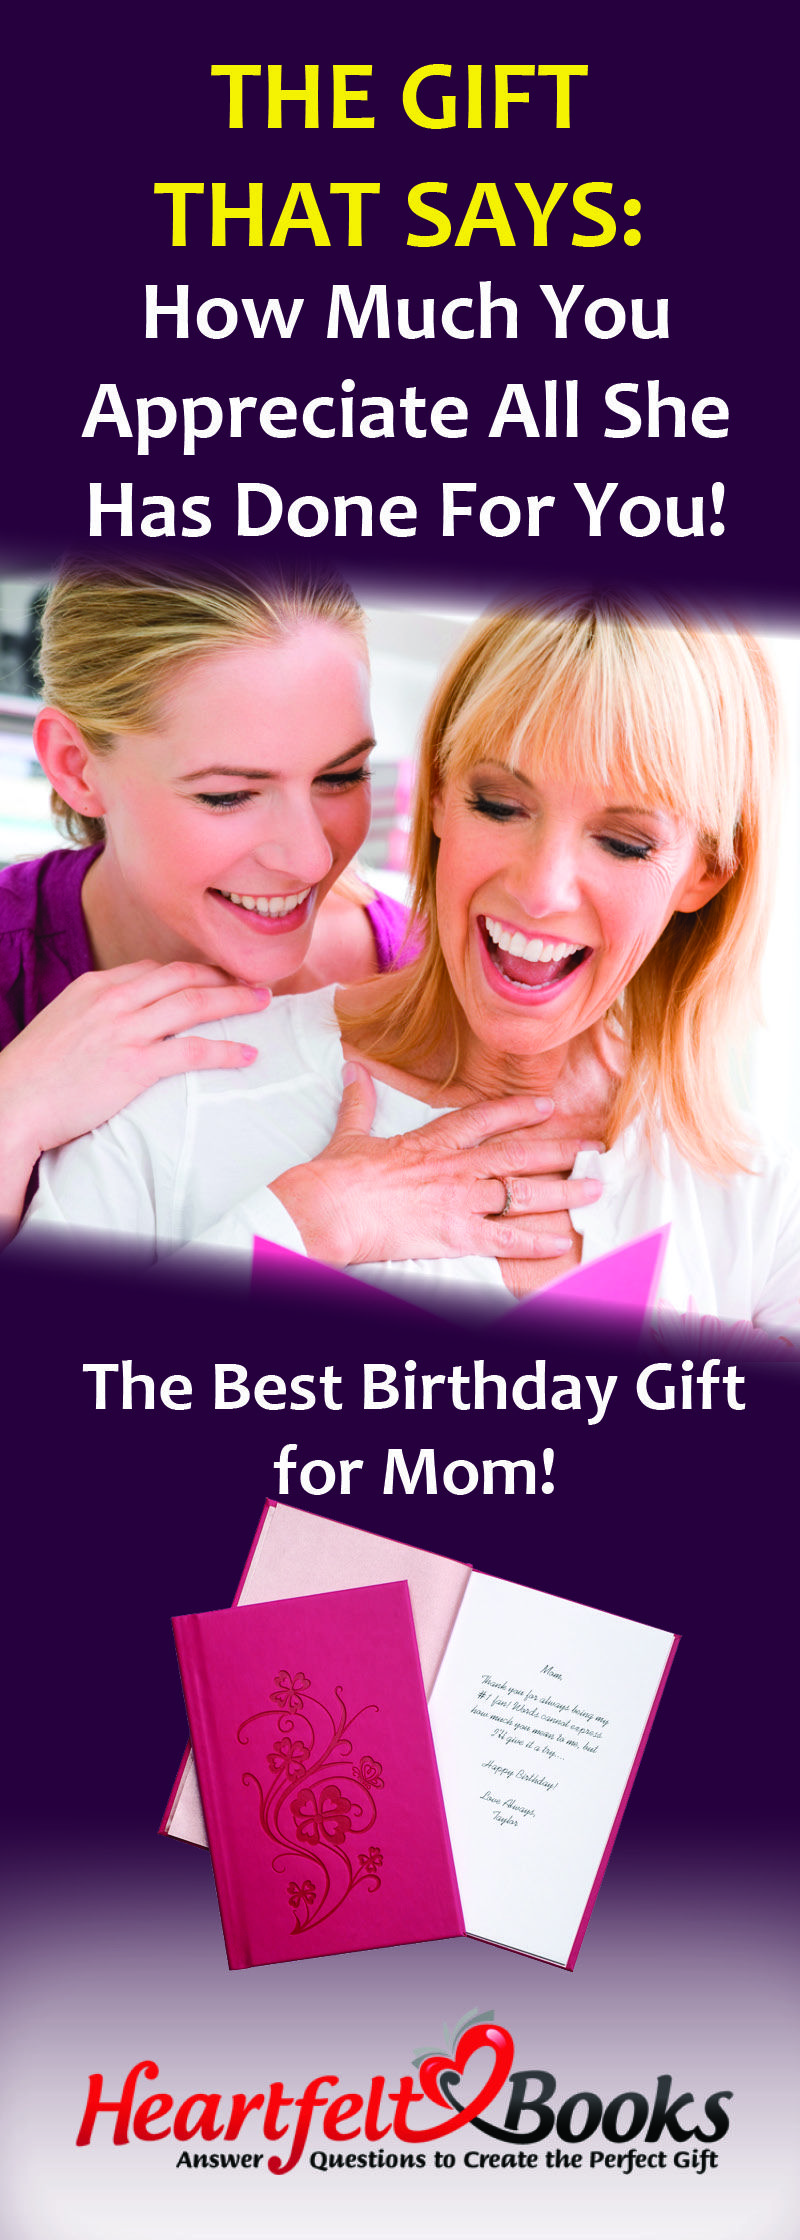 30 Gift Ideas Moms Really Want For Mother's Day Gifts